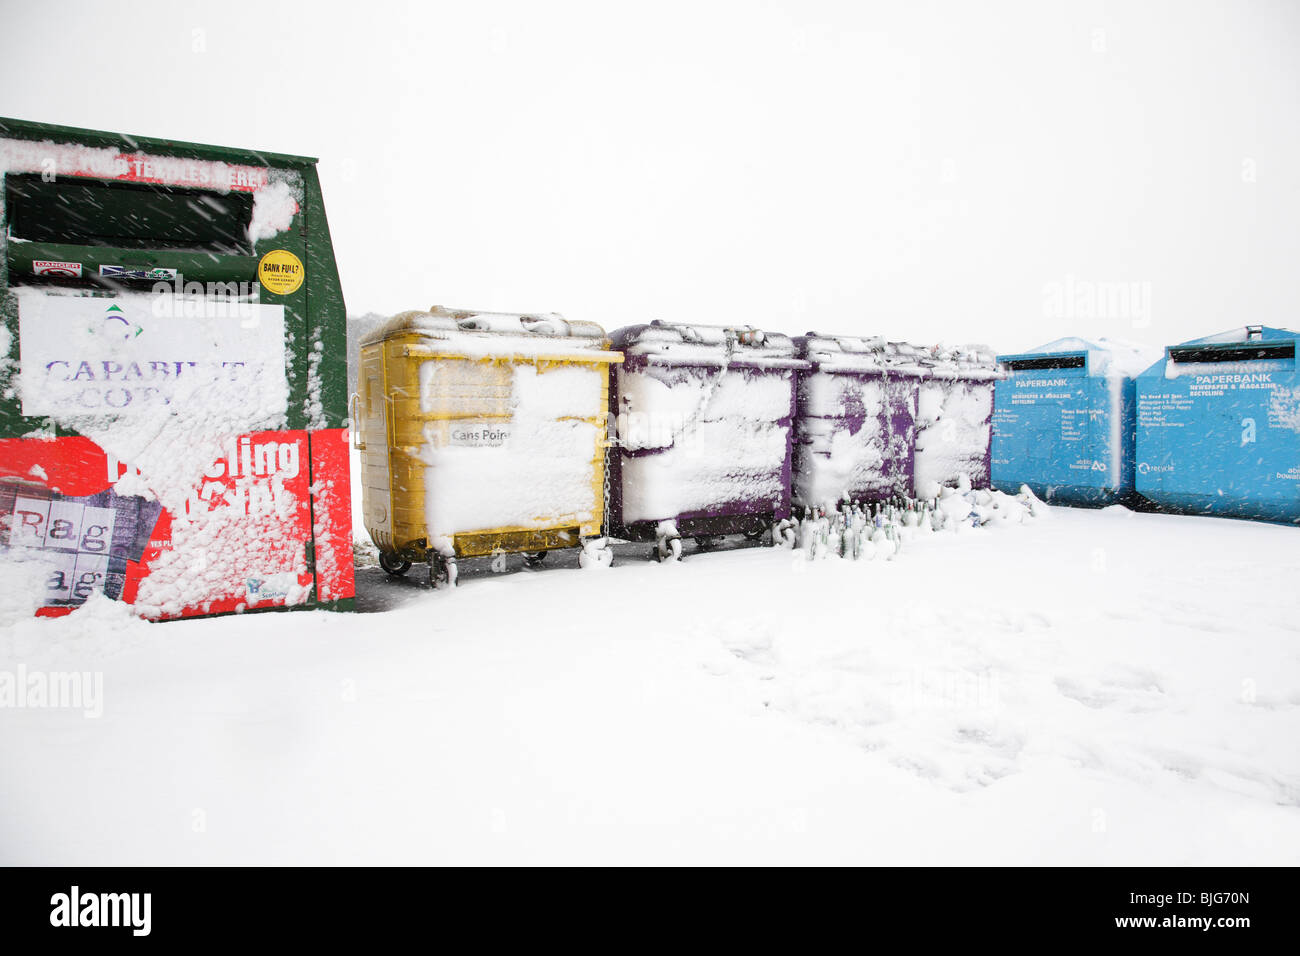 Recycling bins in winter, Scotland UK Stock Photo